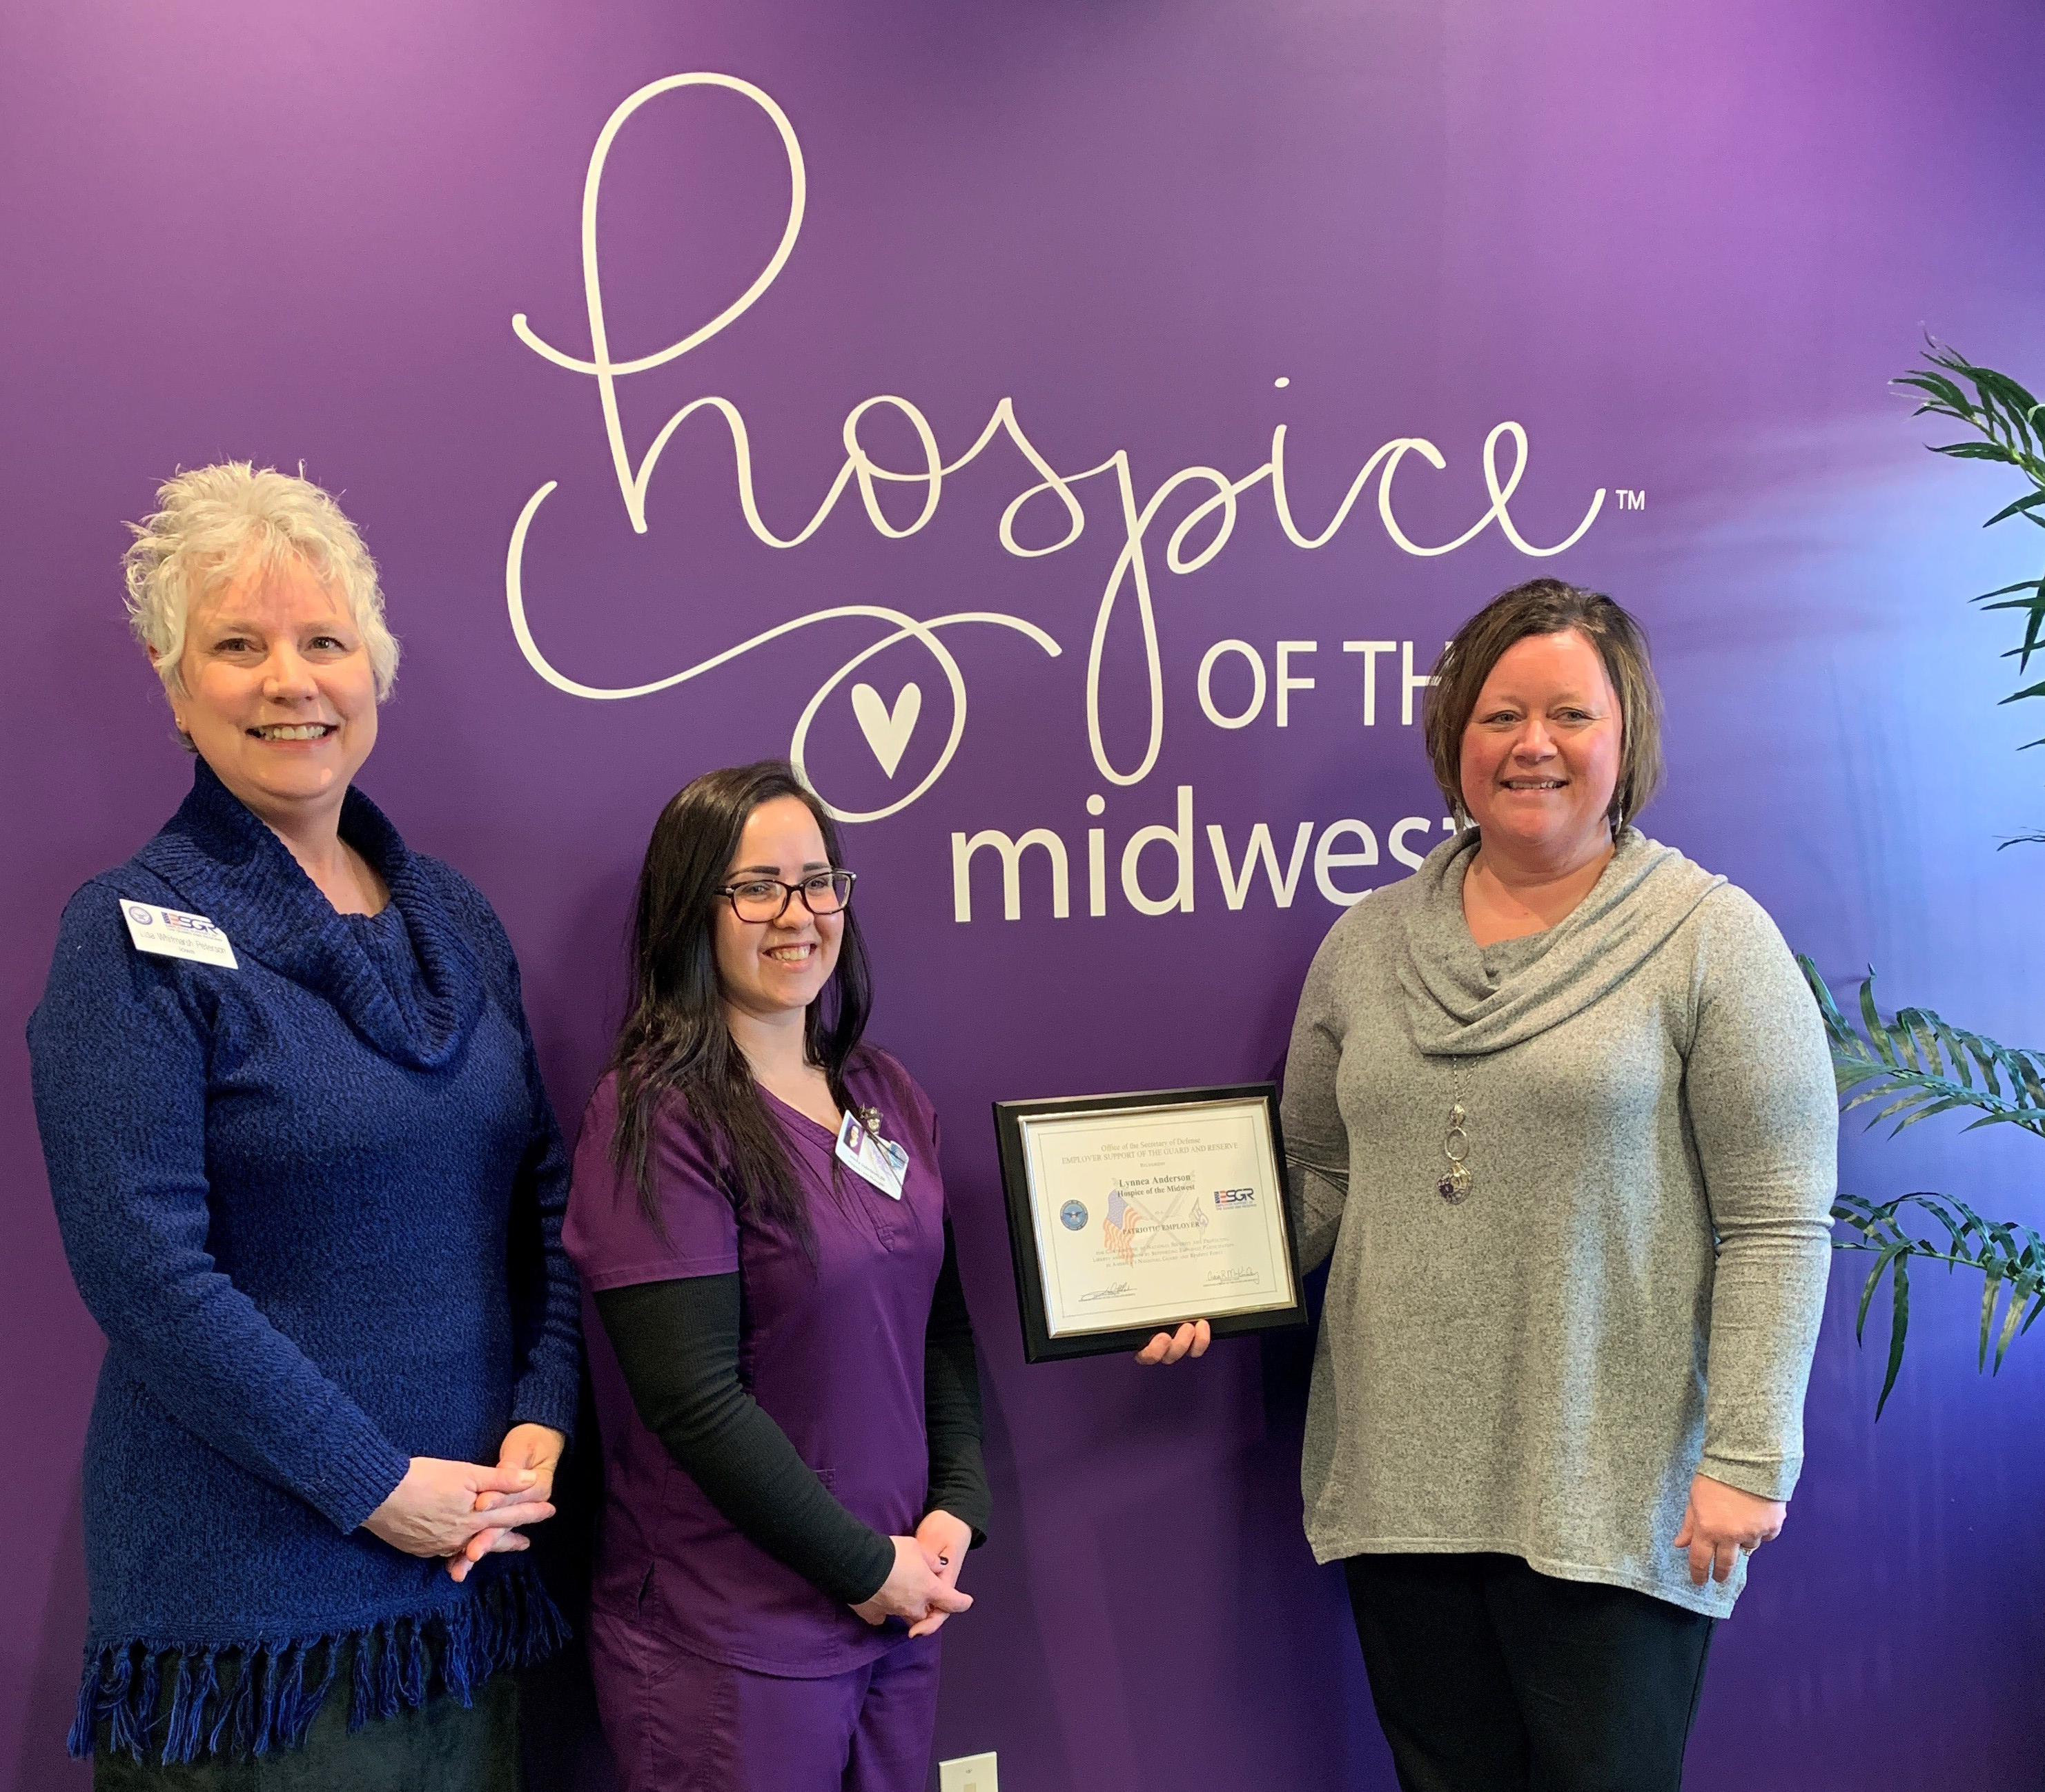 The ESRG office awarding Lynnea Andersen The Patriot Award for valiant efforts in supporting and honoring those who have or are serving our country and working for Hospice of the Midwest